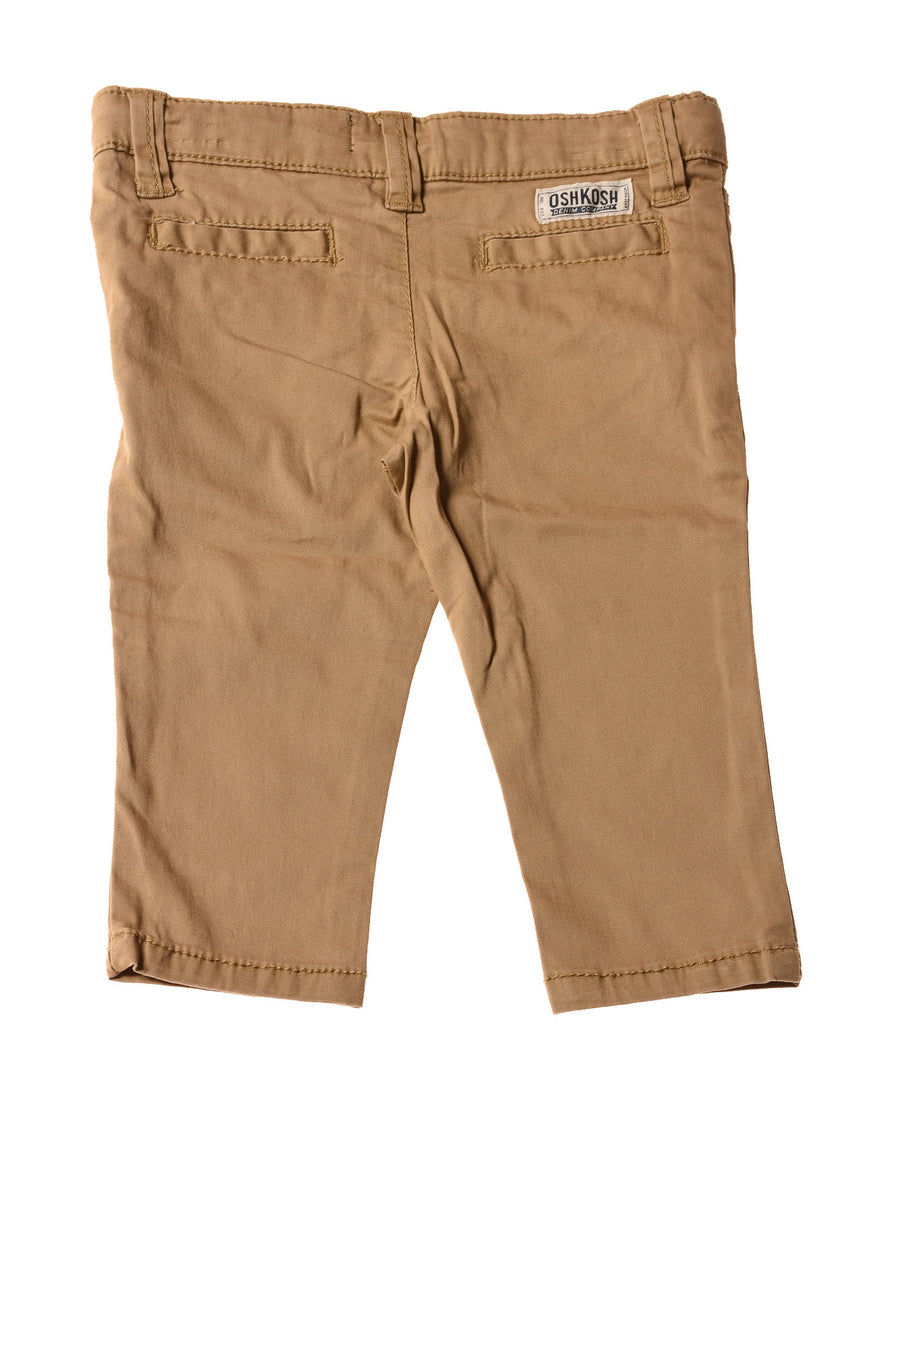 NEW Oshkosh Baby Slacks 9 Months Tan